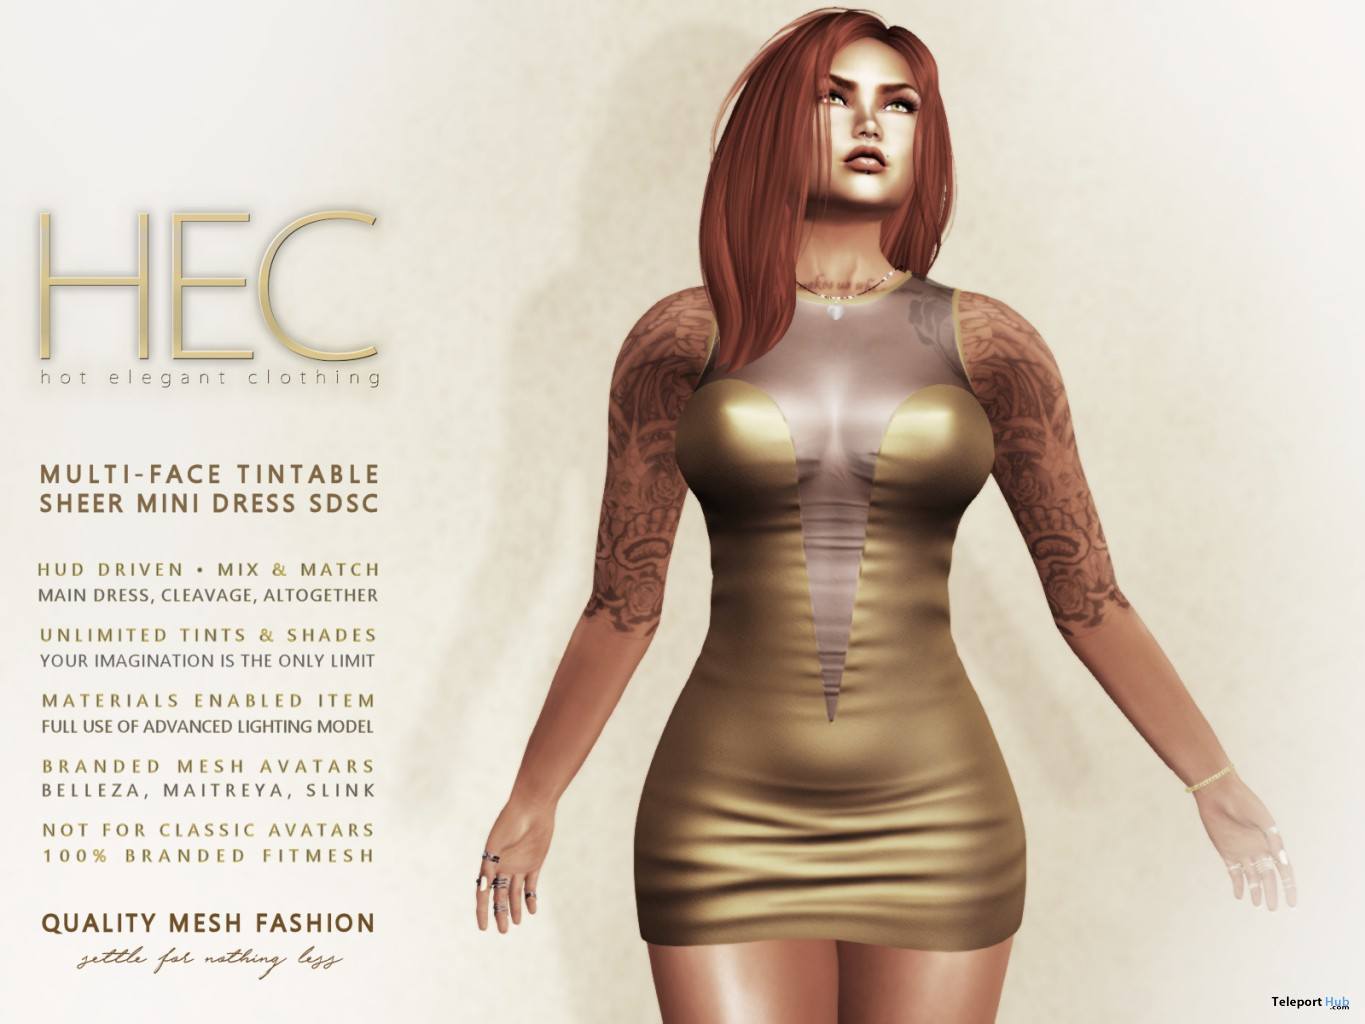 Mutli-Face Tintable Sheer Mini Dress 99L Promo by HEC - Teleport Hub - teleporthub.com